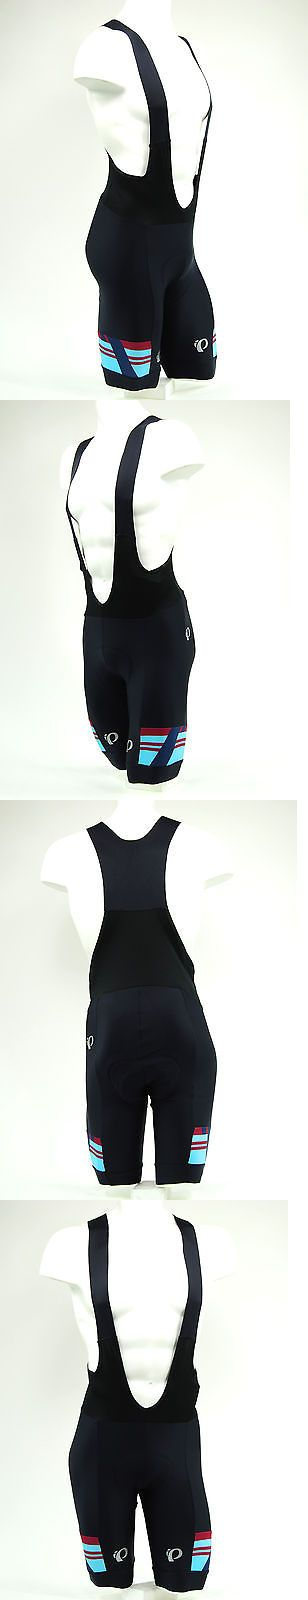 Shorts 177853: Pearl Izumi 2017 P.R.O. Pro Escape Cycling Bib Shorts Black/Tibetan Red, Large BUY IT NOW ONLY: $107.88